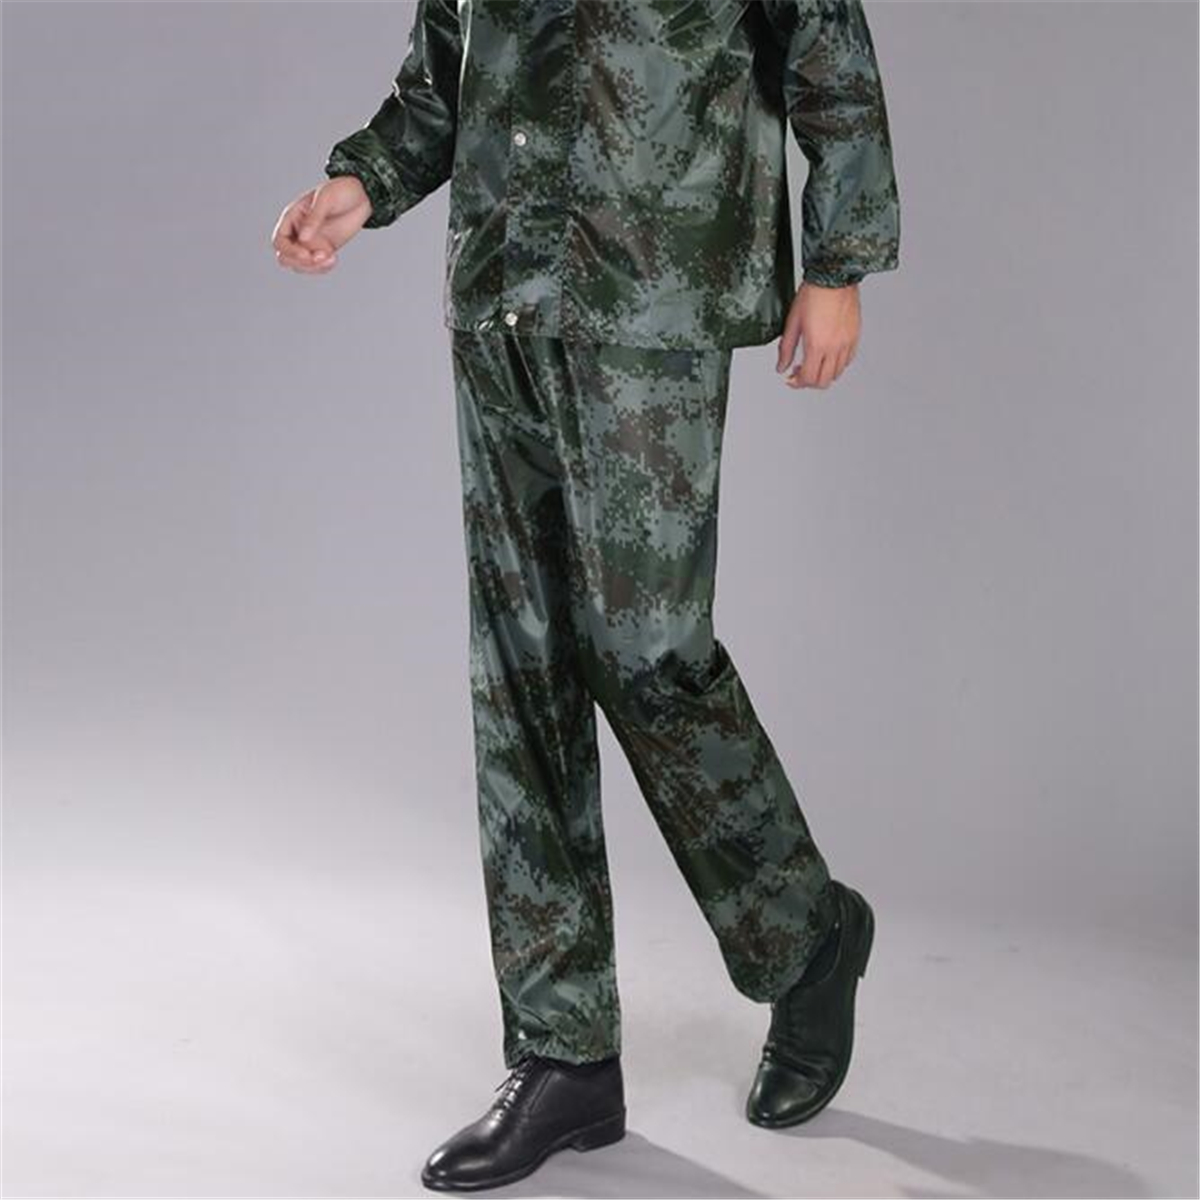 Camouflage Raincoat Camping Hiking Motorcycle With Waterproof Face Mask Adult Rainwear Suits